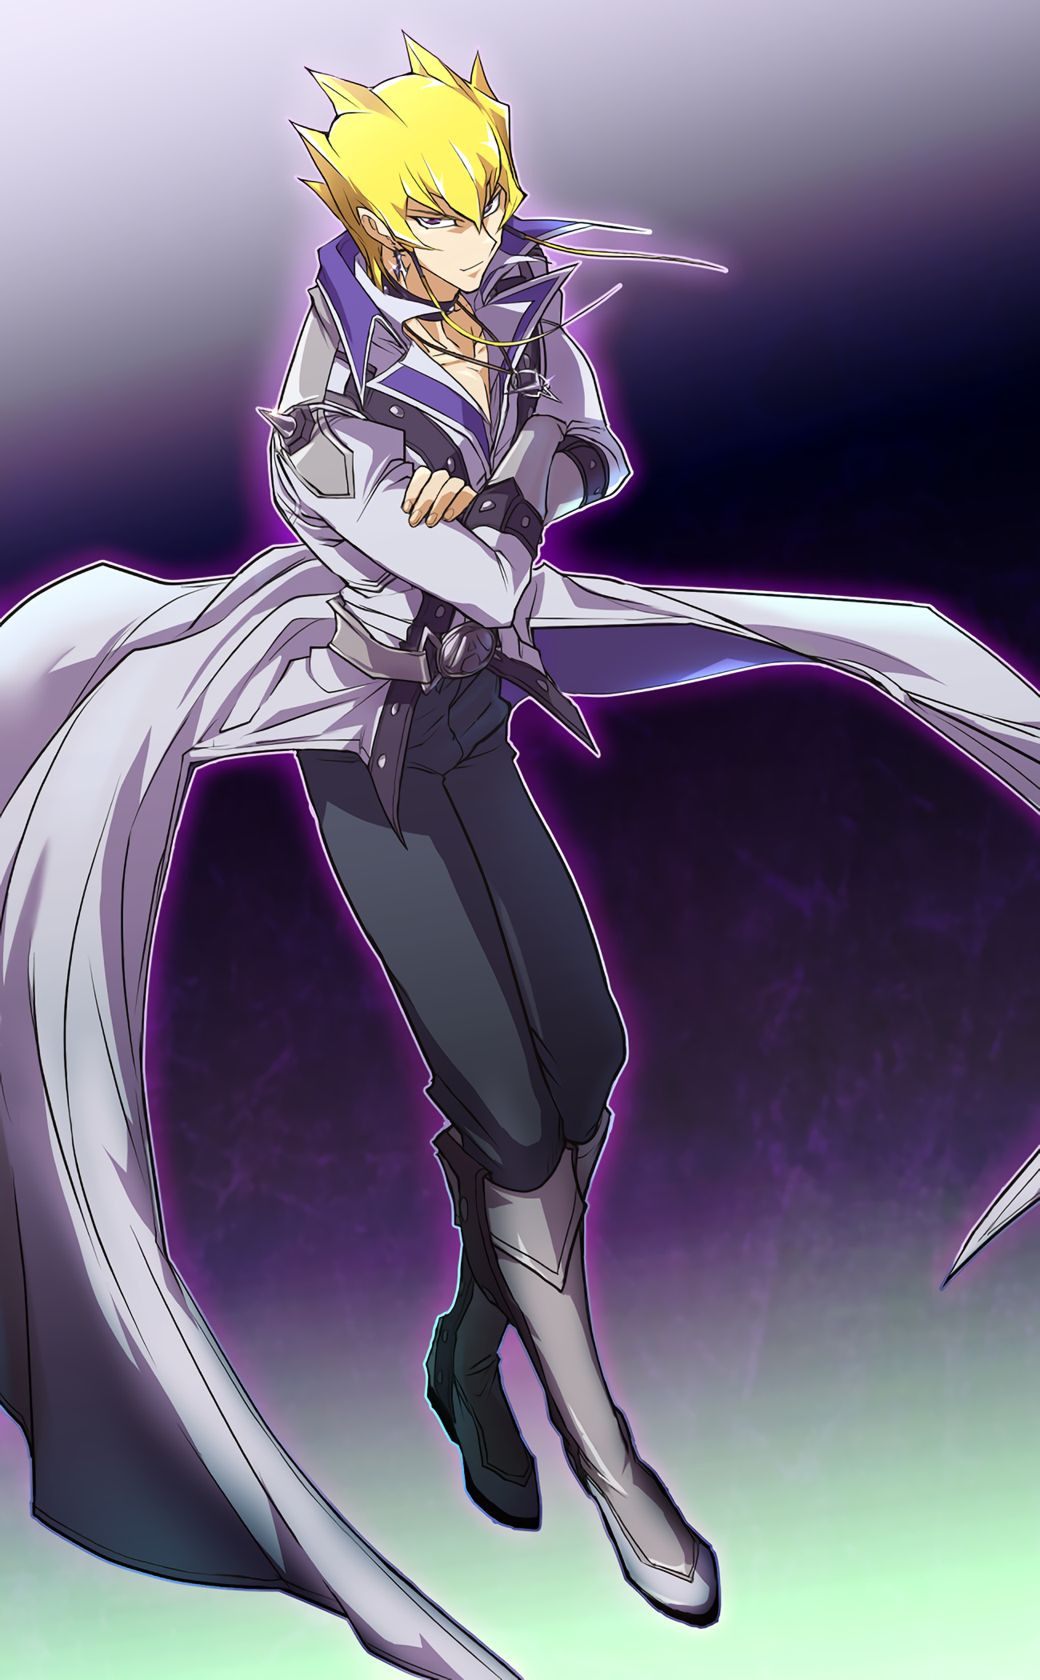 Pin by Joud on Jack Atlas Yugioh, Anime, Anime images